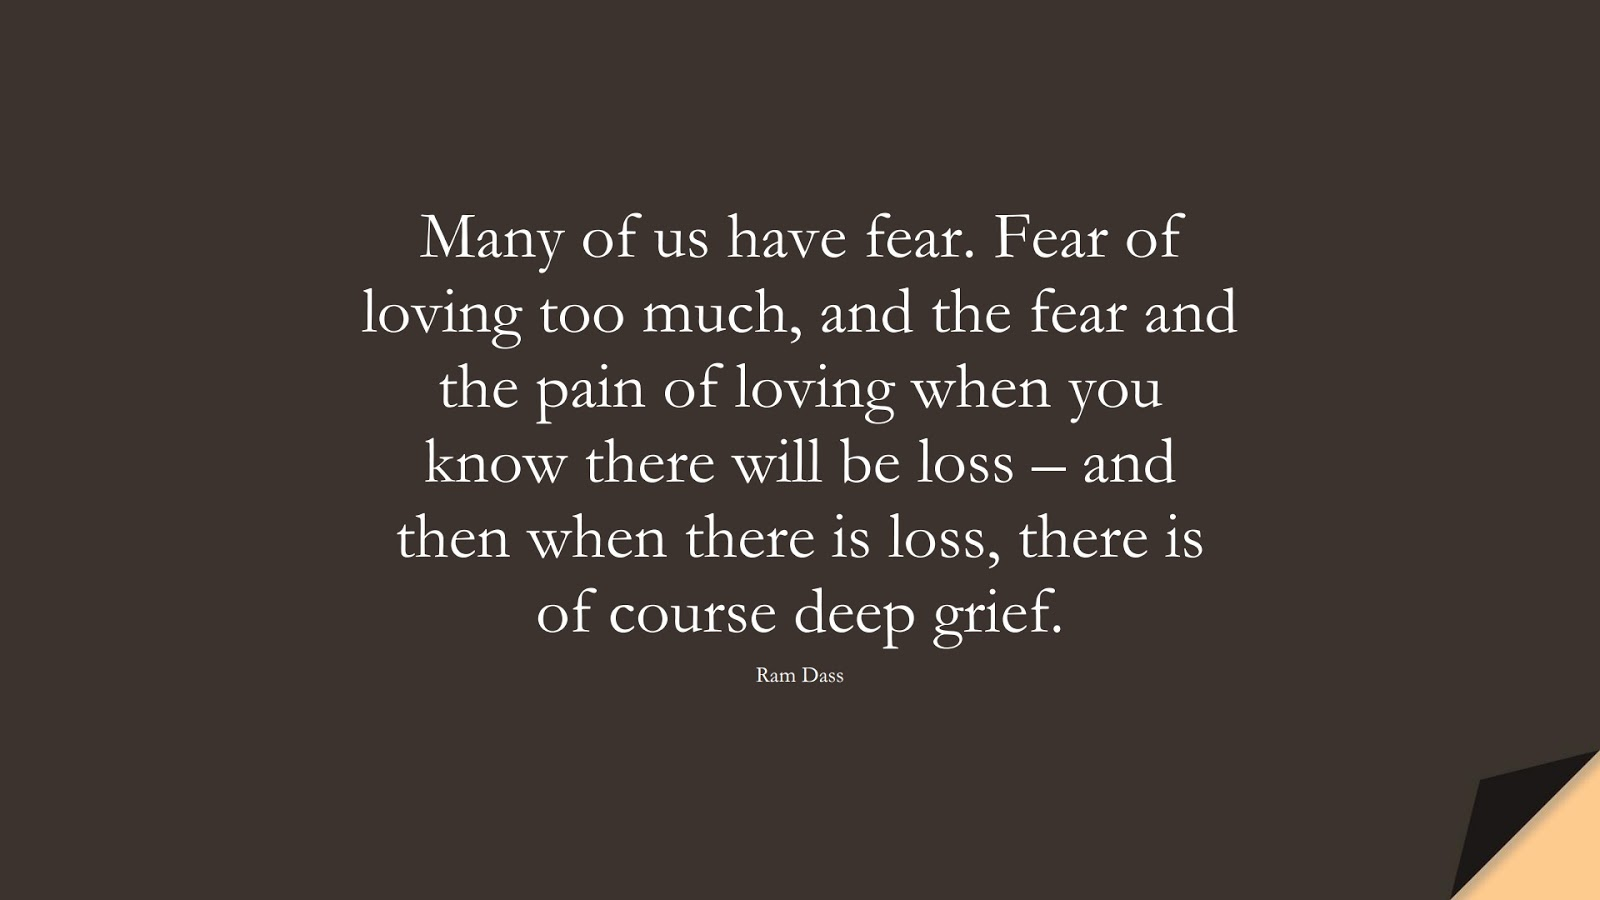 Many of us have fear. Fear of loving too much, and the fear and the pain of loving when you know there will be loss – and then when there is loss, there is of course deep grief. (Ram Dass);  #FearQuotes